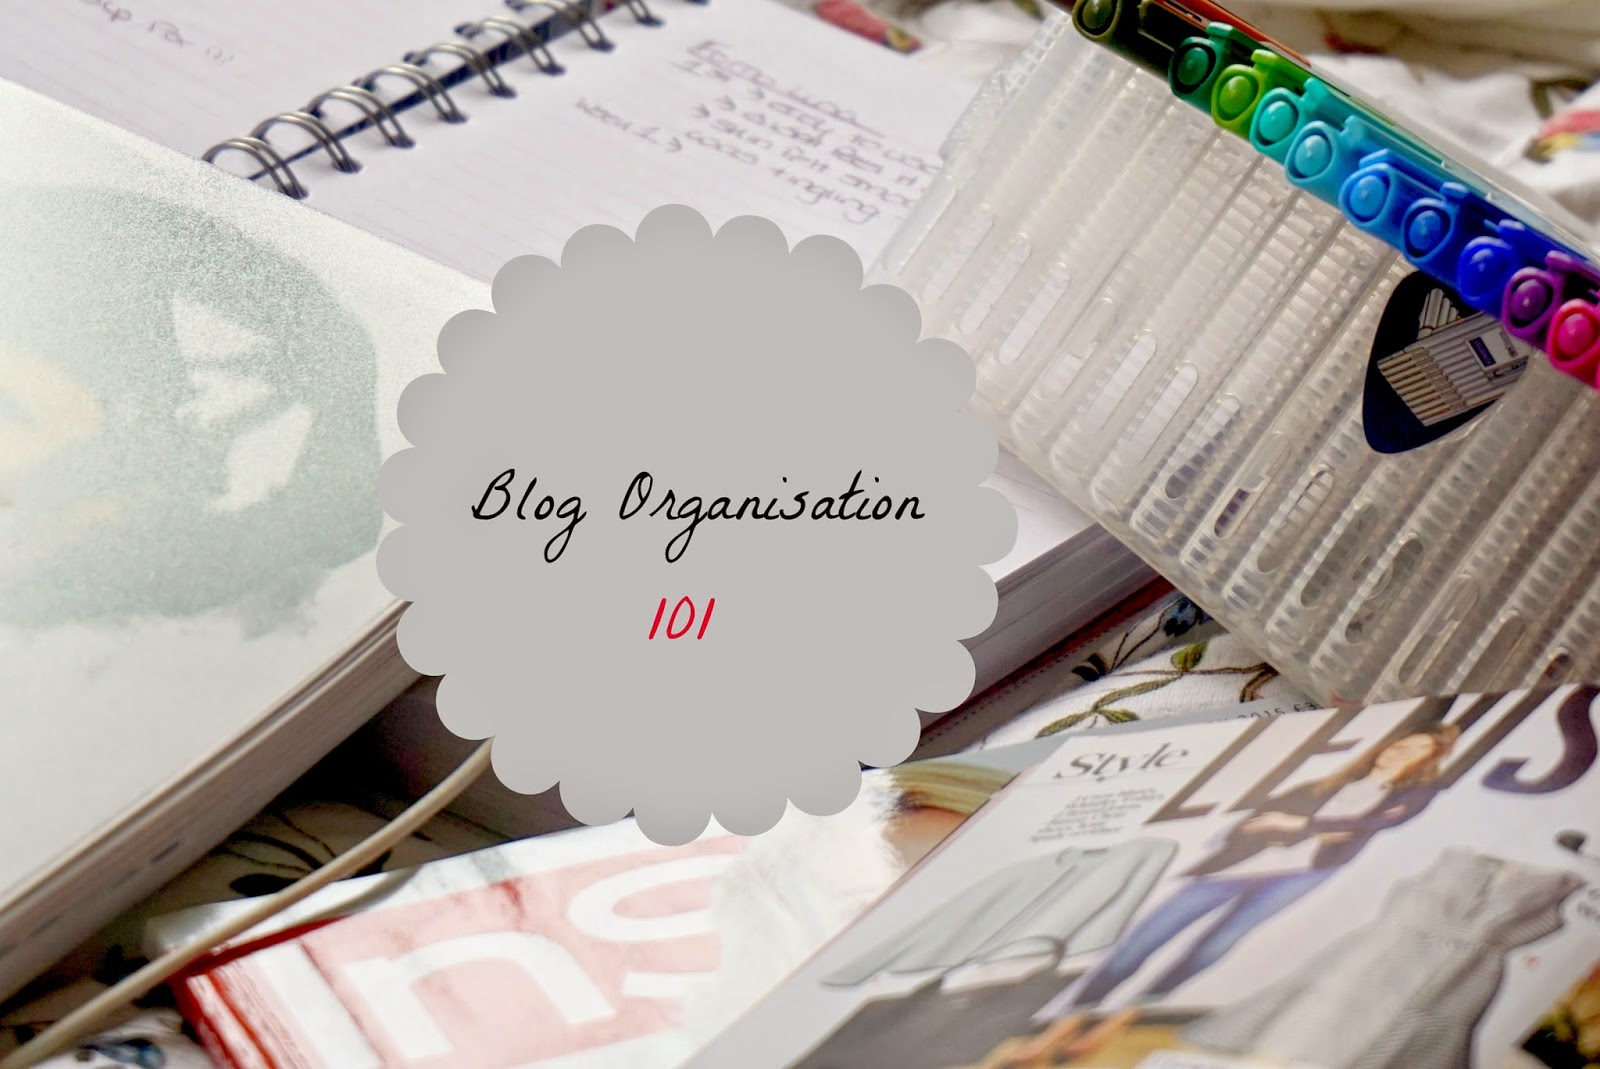 How to organise your blog